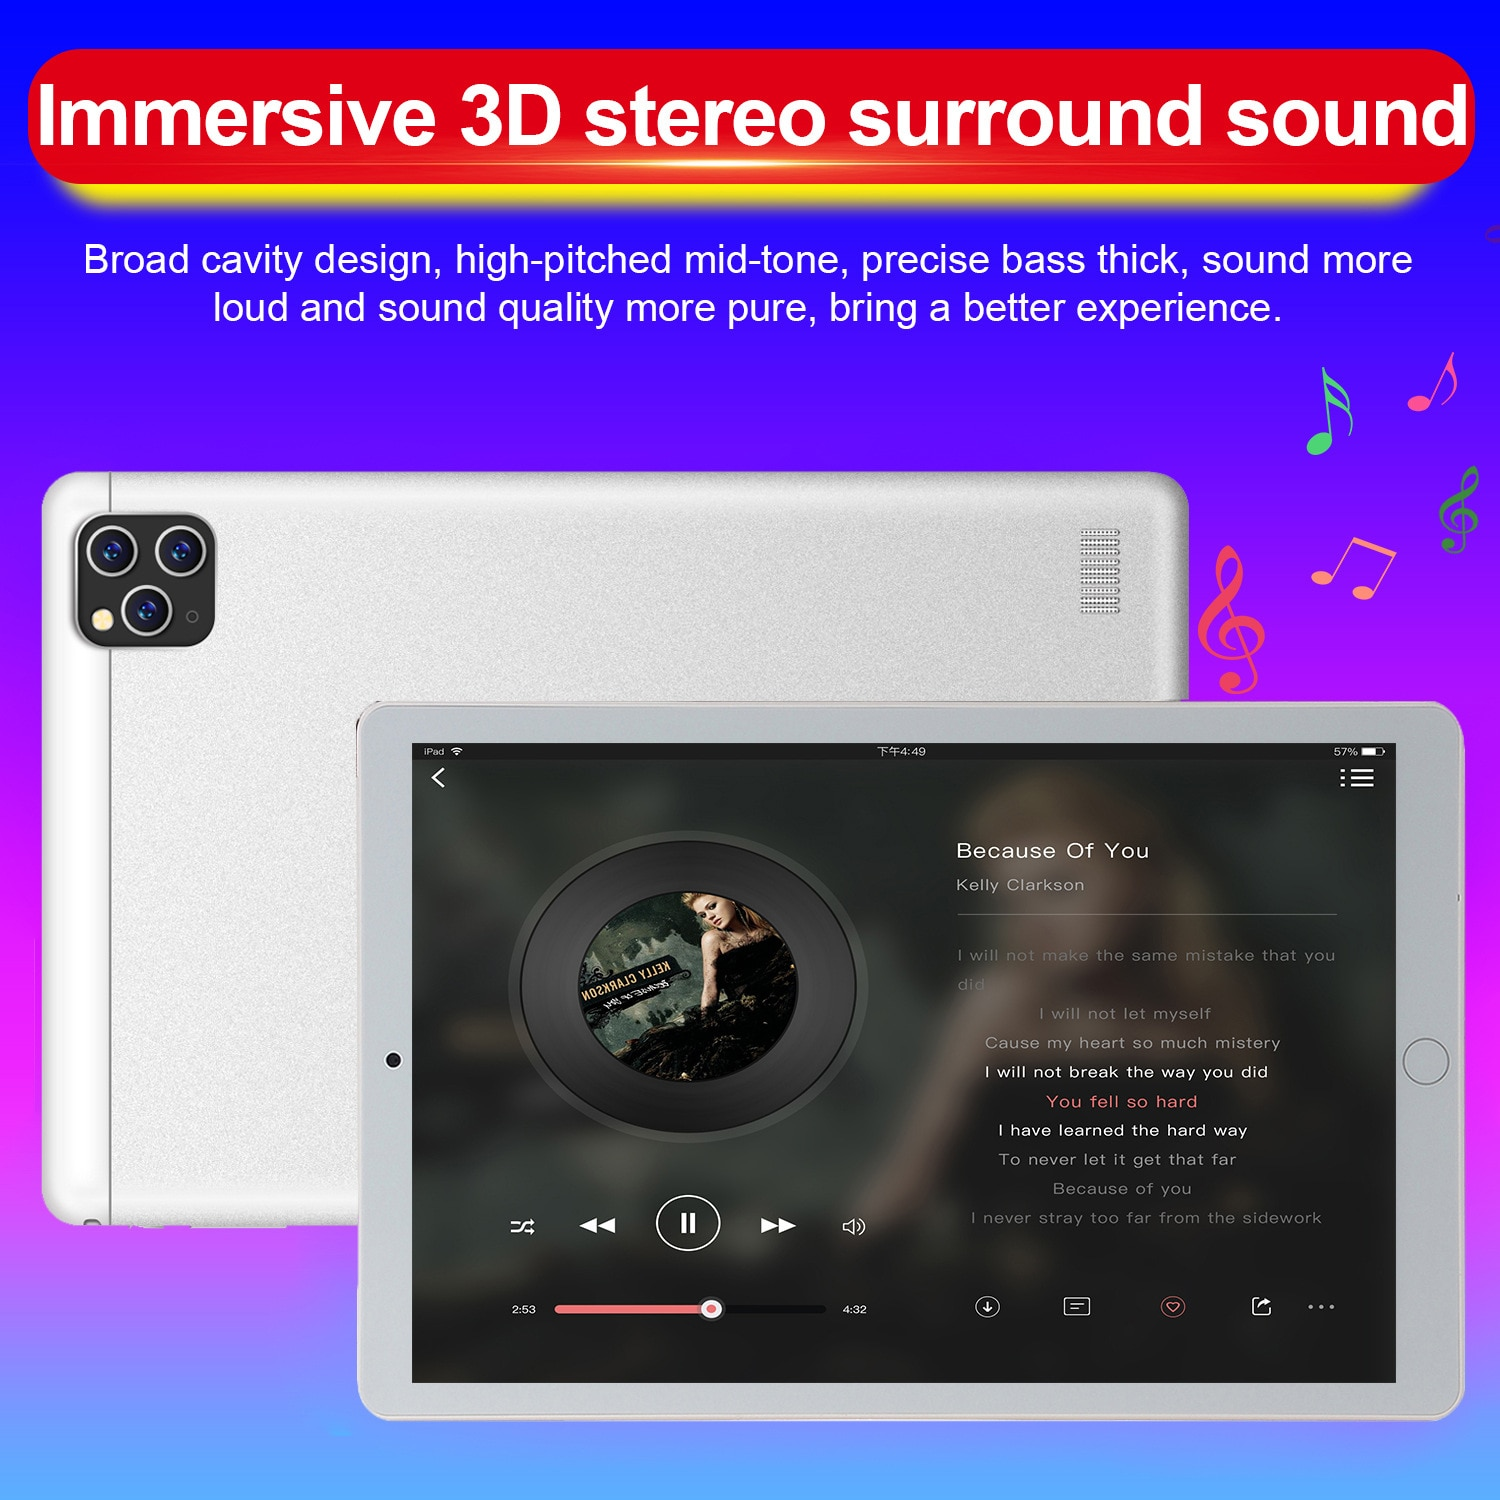 2021 New Tablet 10.1 inch 6G+128GB Android 9.0 Full Netcom 4G 2-in-1 Learning Machine Suitable for Huawei Glory Line